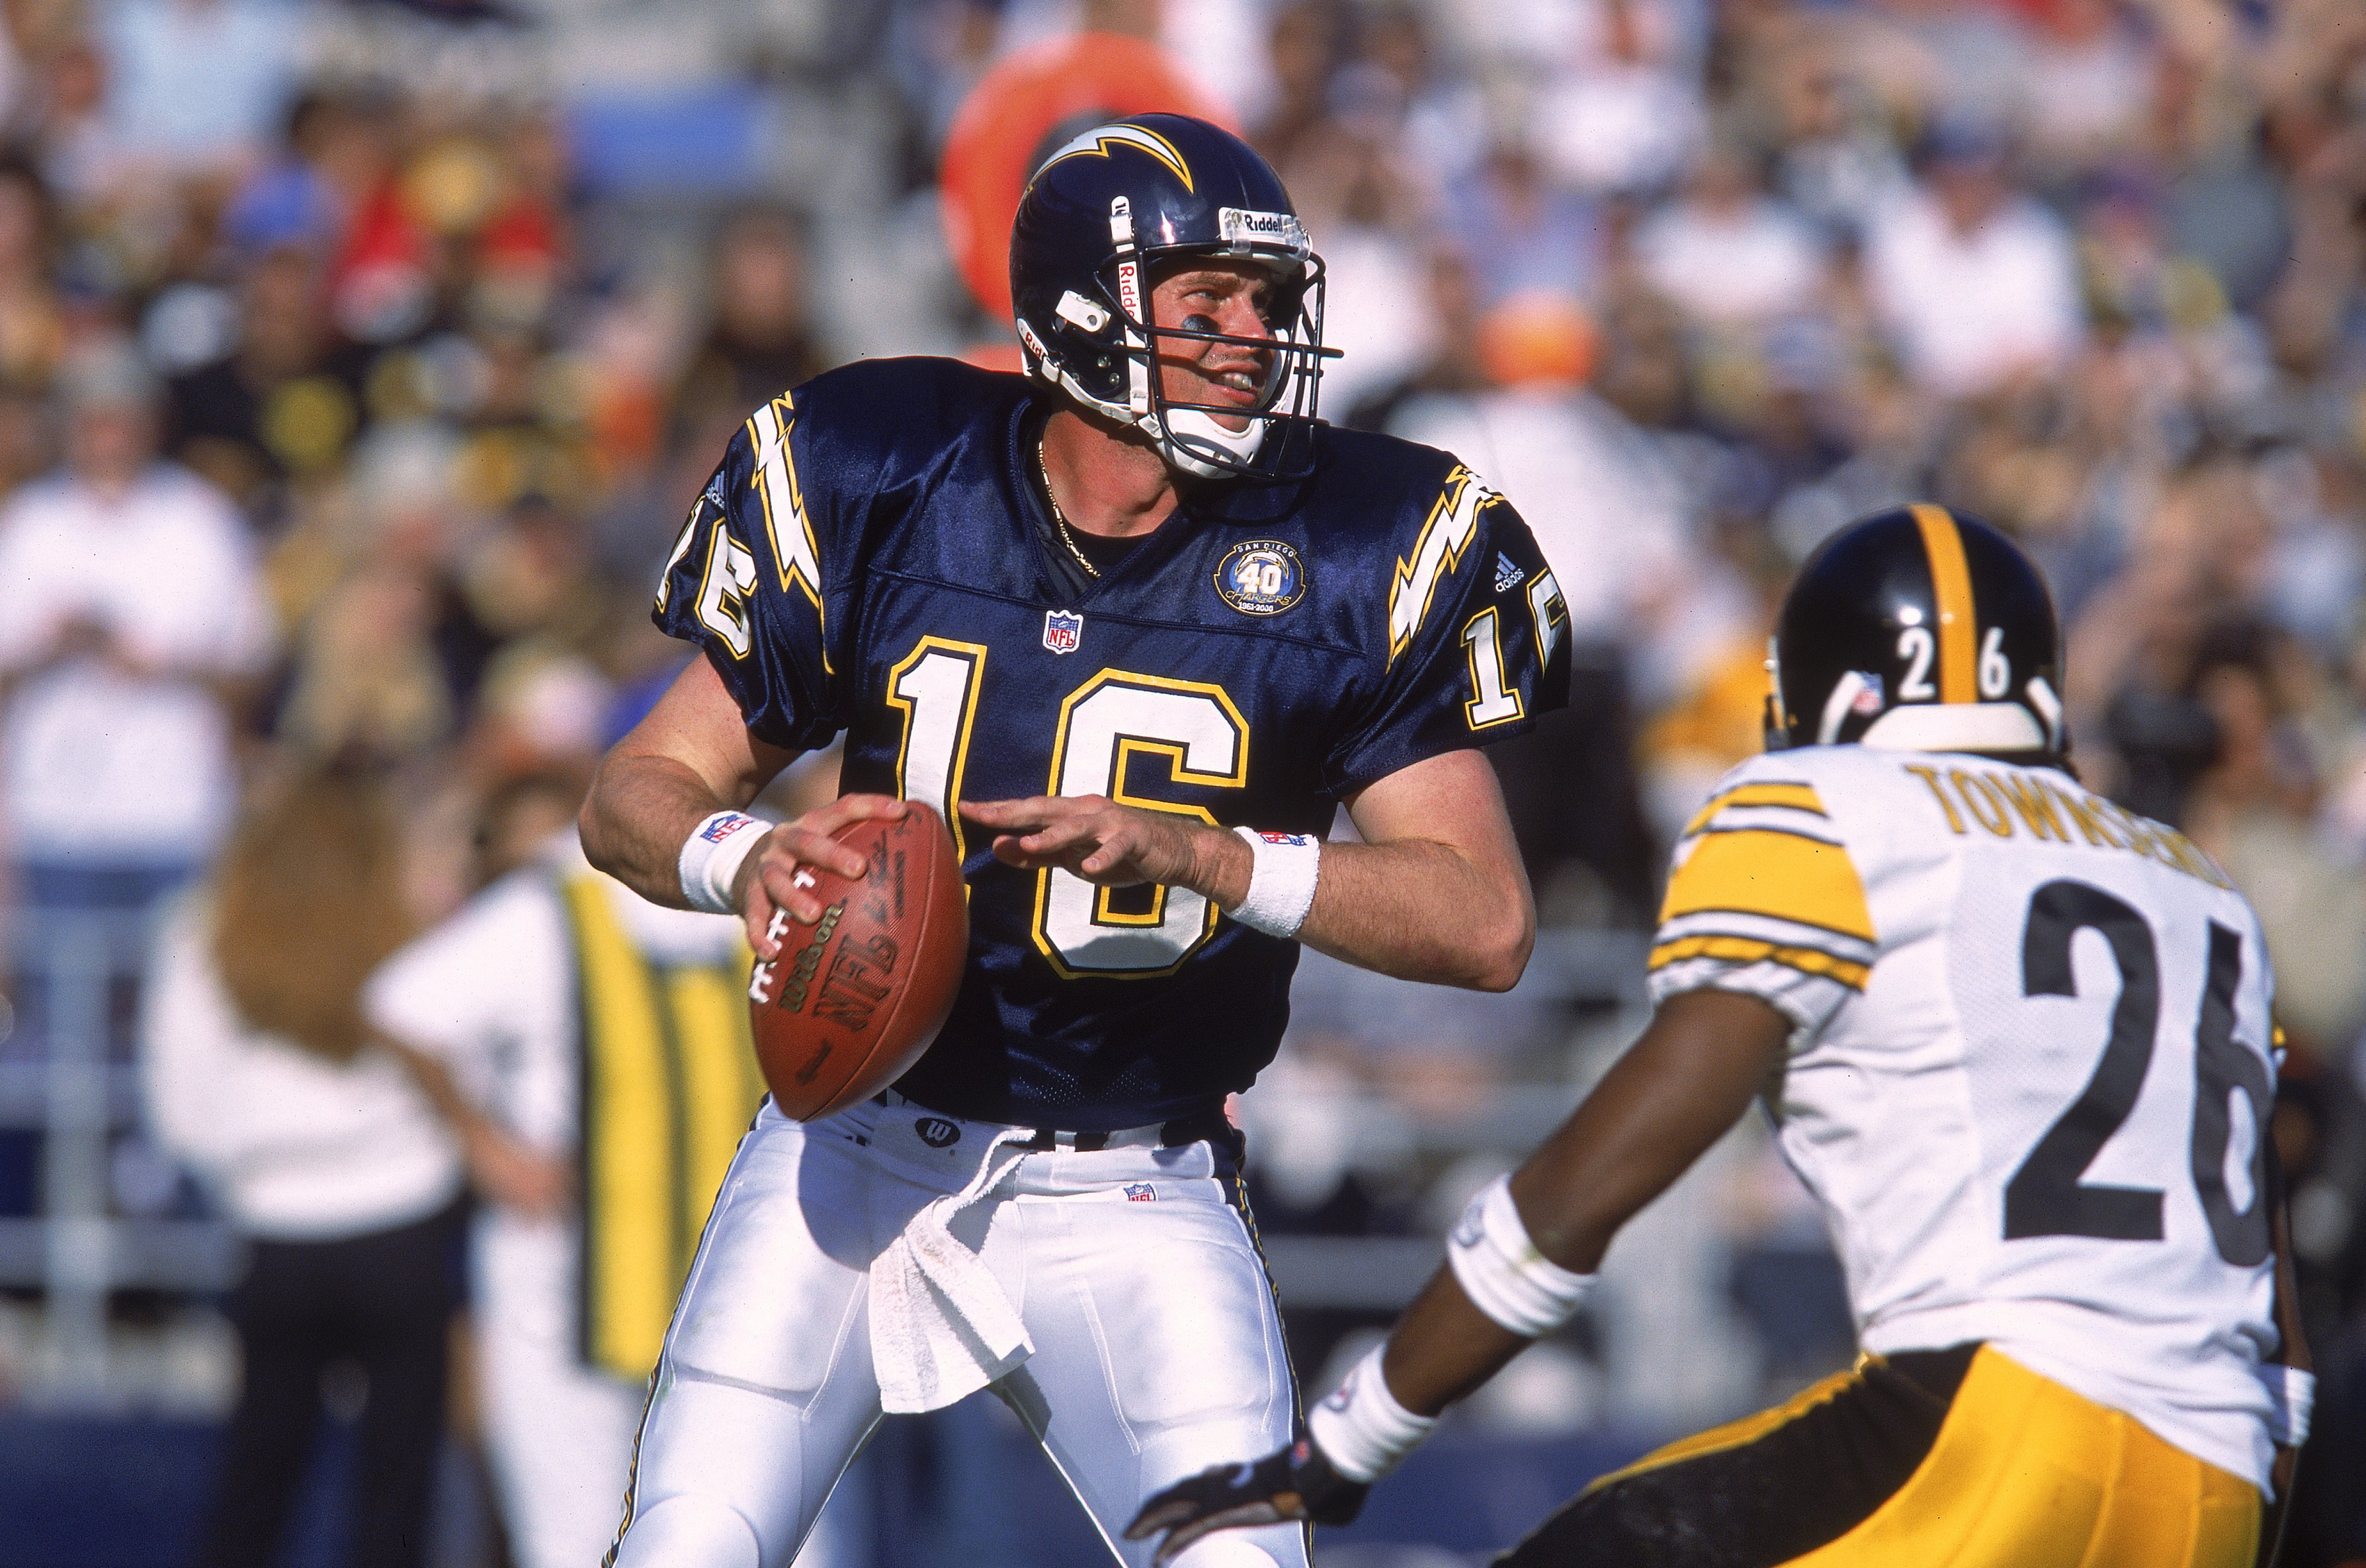 24 Dec 2000:  Quarterback Ryan Leaf #16 of the San Diego Chargers looks to pass the ball during the game against the Pittsburgh Steelers at Qualcomm Stadium in San Diego, California. The Steelers defeated the Chargers 34-21.Mandatory Credit: Stephen Dunn